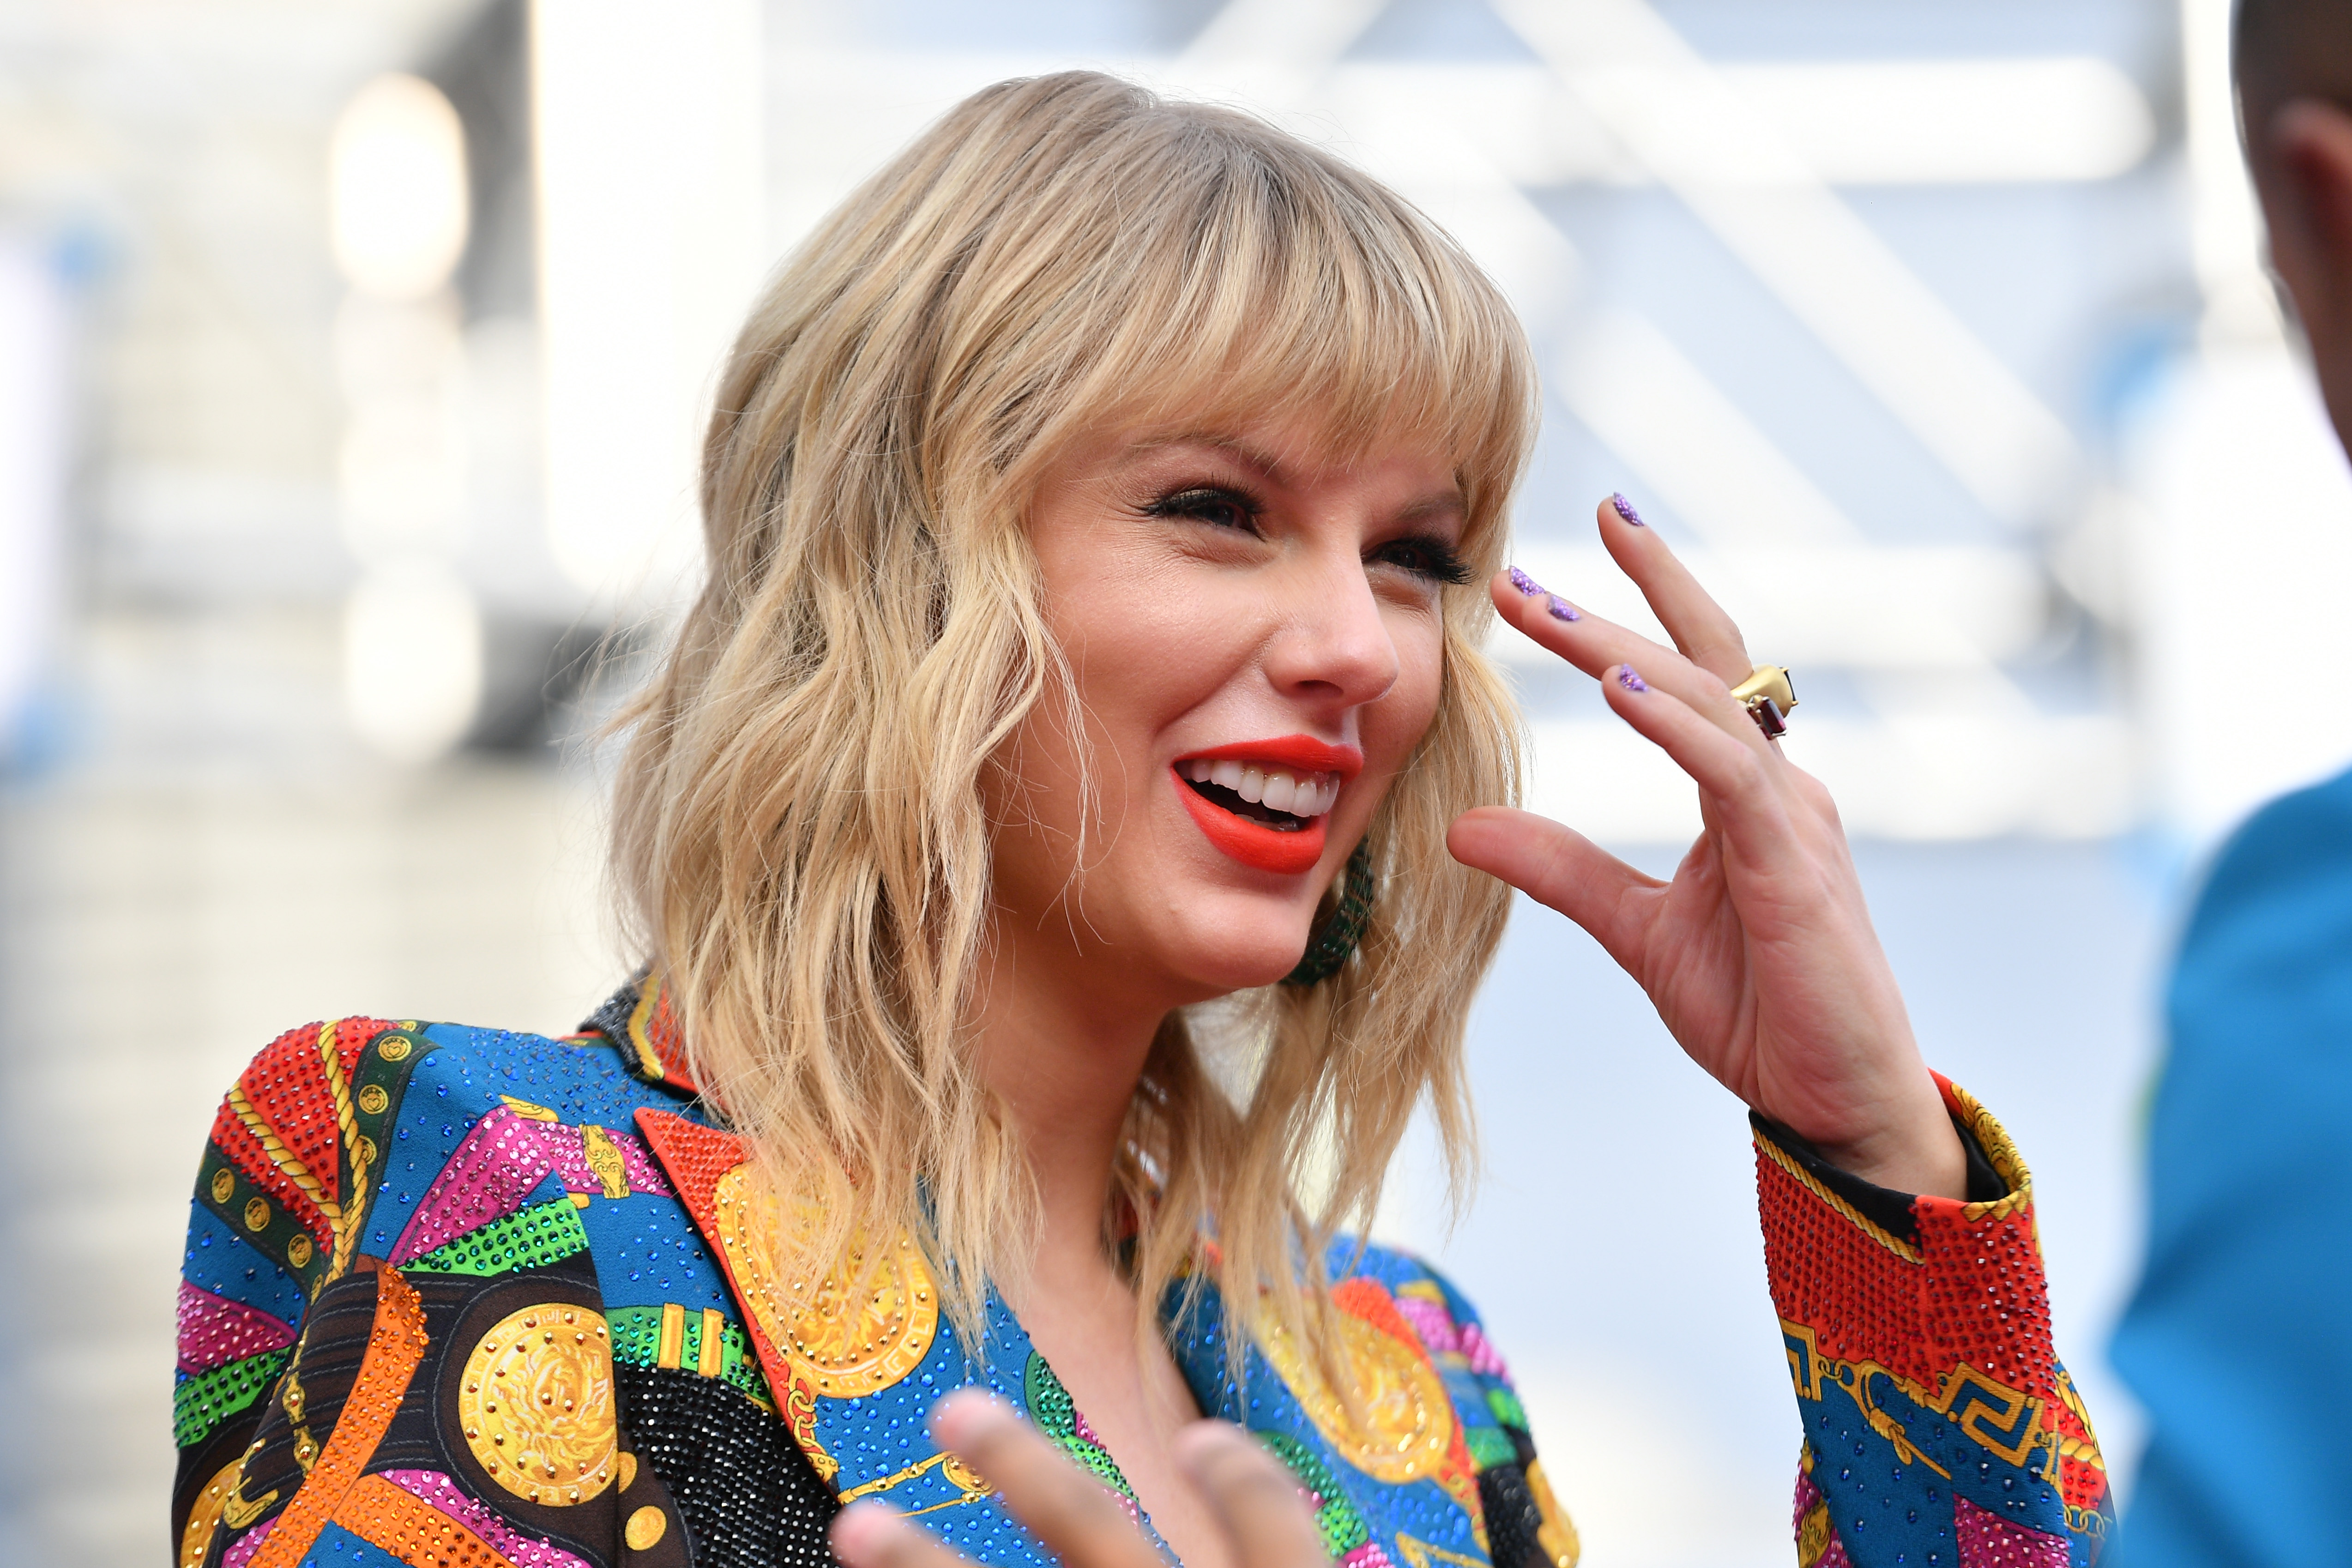 How To Get Tickets For Taylor Swifts 2020 Lover Tour In The UK 5094x3396